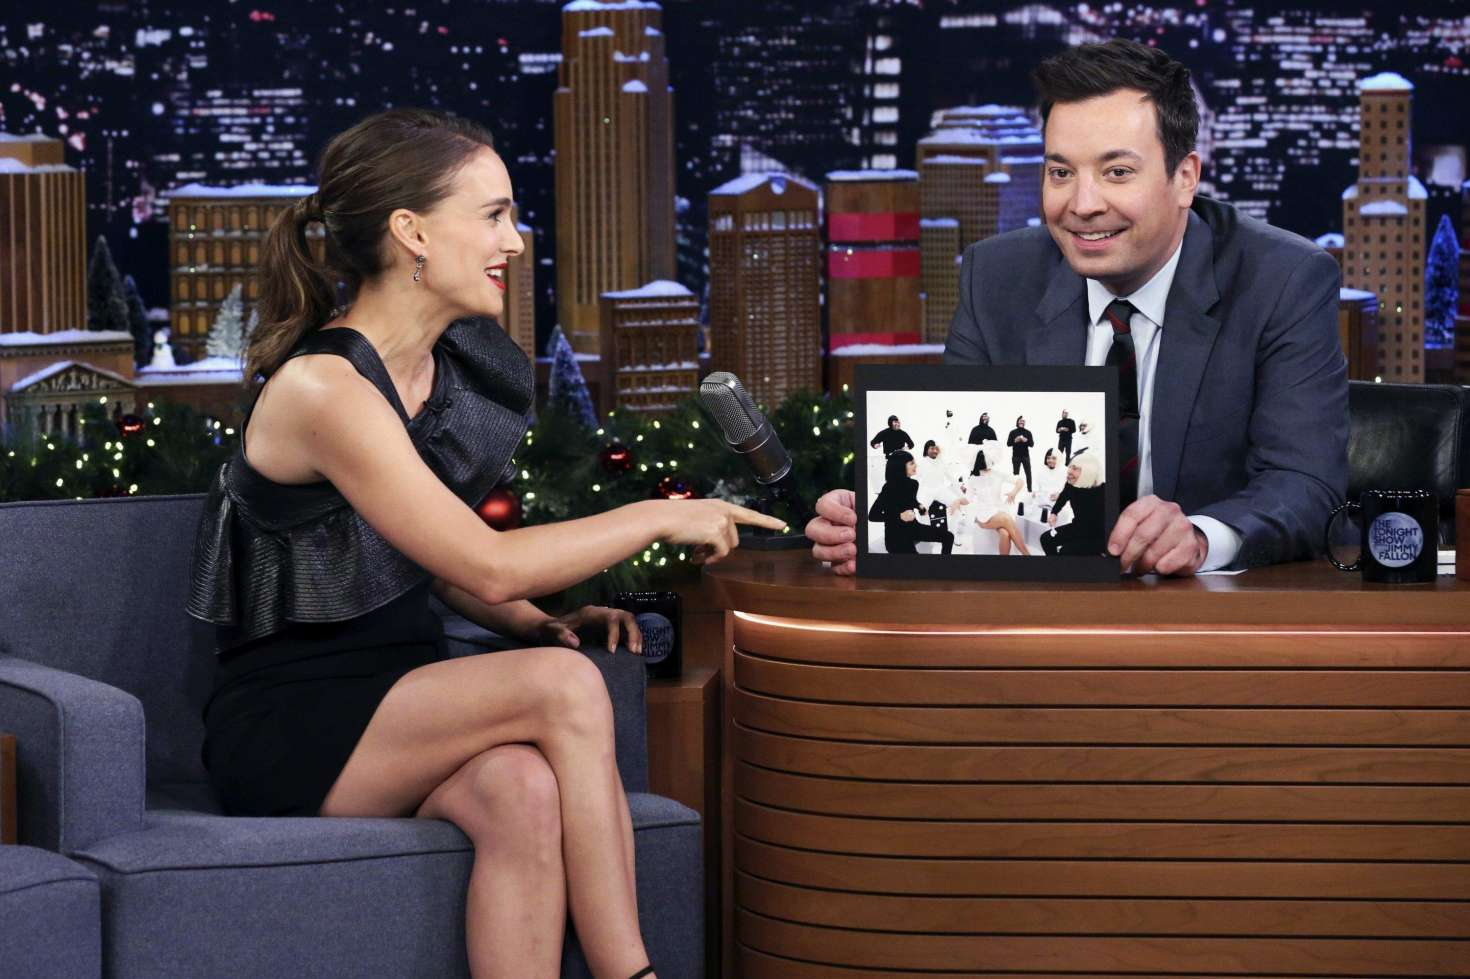 Natalie Portman 2018 : Natalie Portman: The Tonight Show Starring Jimmy Fallon -01